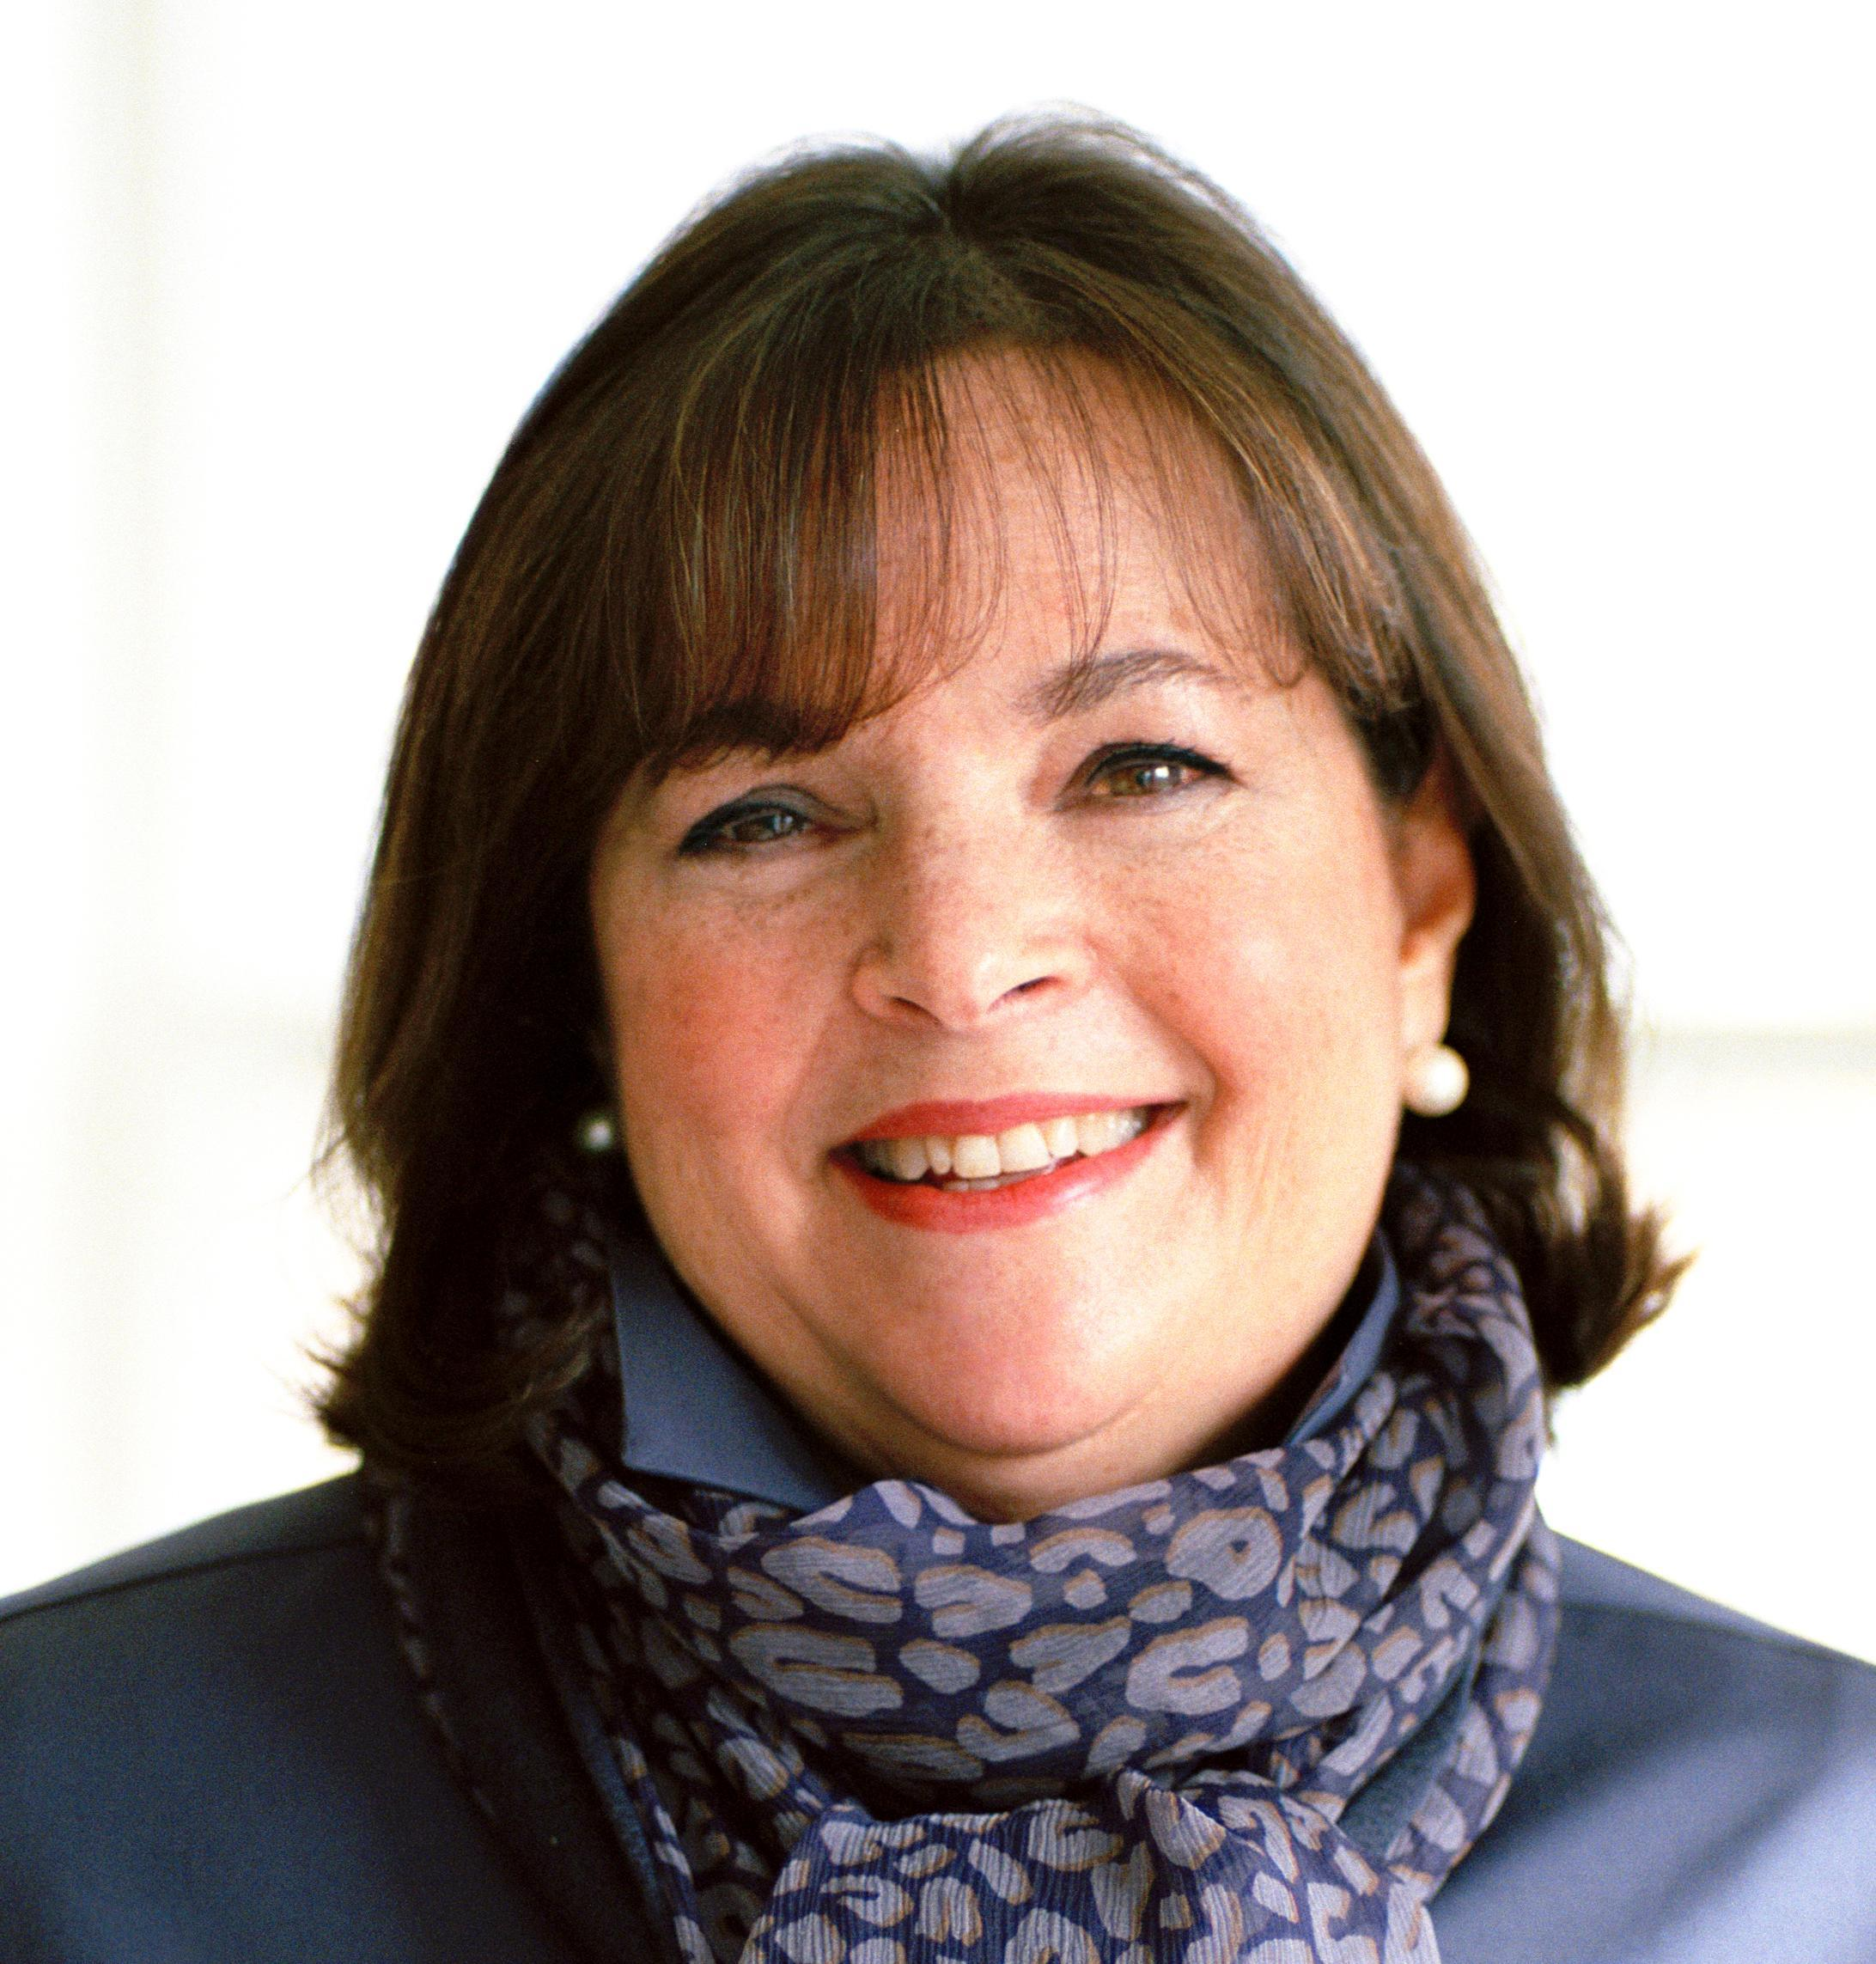 September 39 s best selling cookbooks ina garten killed it - Best ina garten cookbook ...